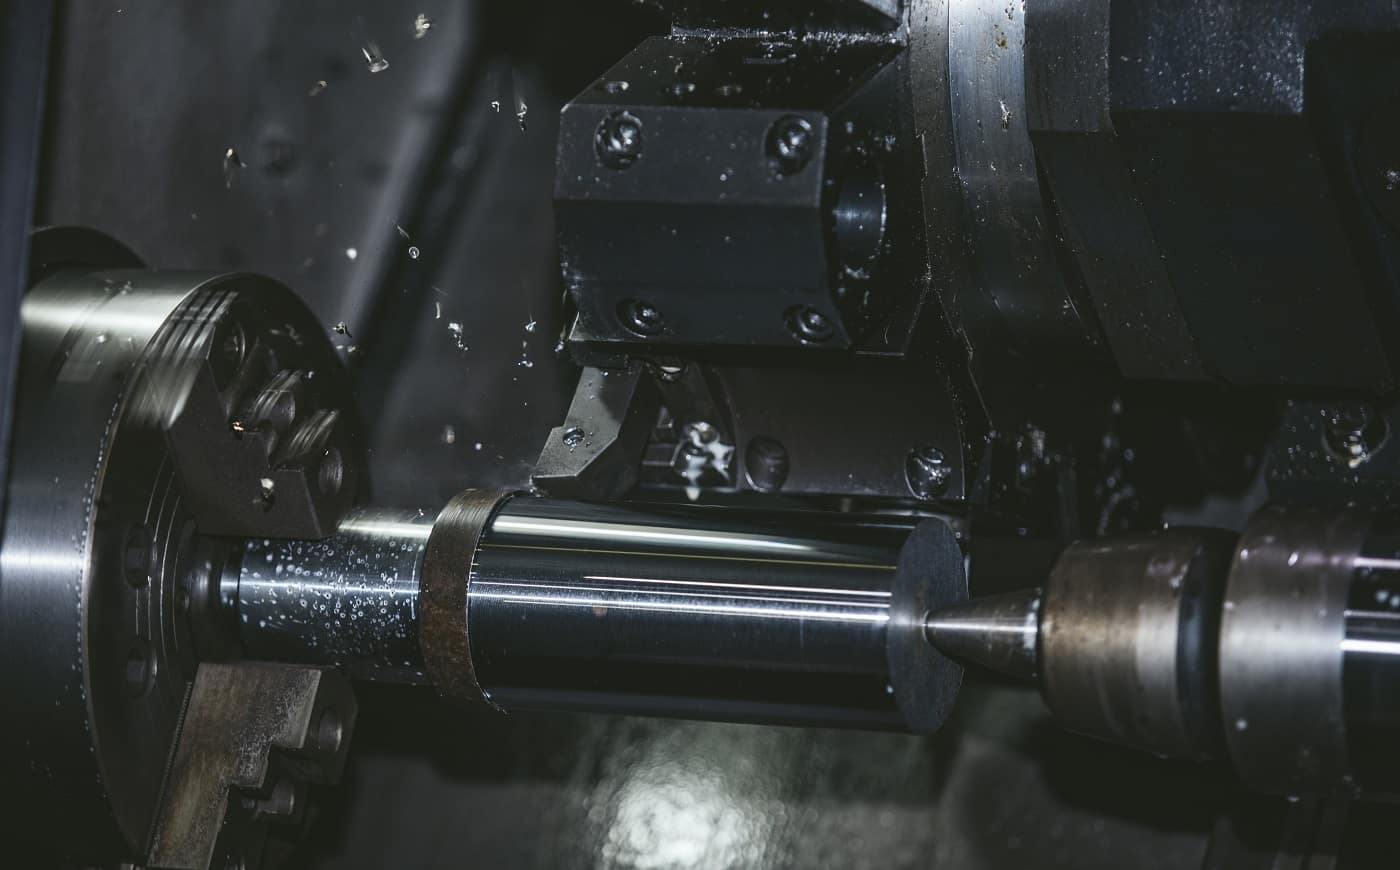 Lathe equipment in the factory manufacturing metal structures and machines